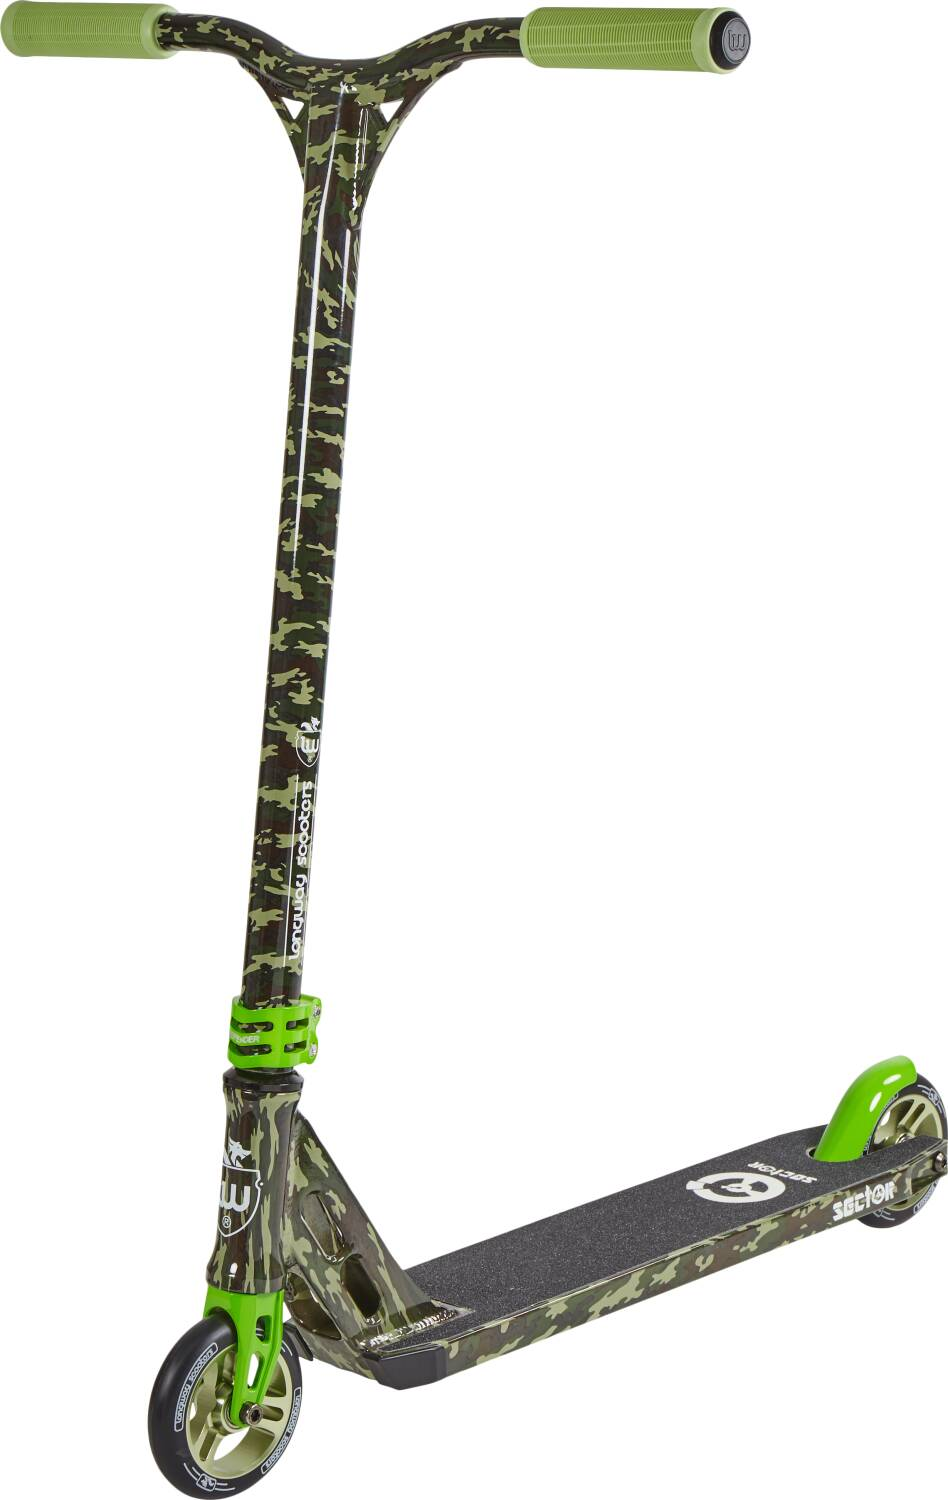 Longway Sector 2K19 Pro Scooter Camo